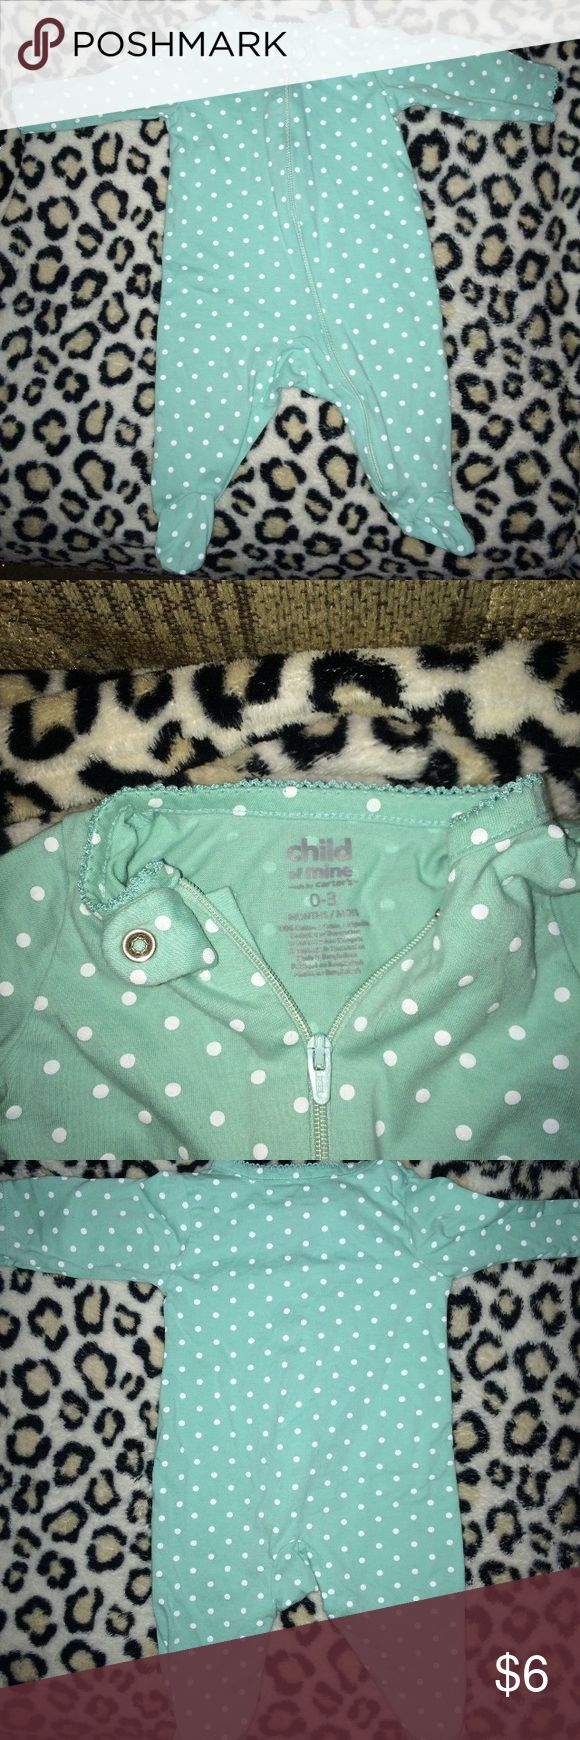 carters  teal and white polka dot footie pajamas carters infant teal and white polka dot footie pajamas Teal with white polka dots Thin breathable material  Long sleeve and zip up Size 0-3 months  Excellent condition Carter's Pajamas